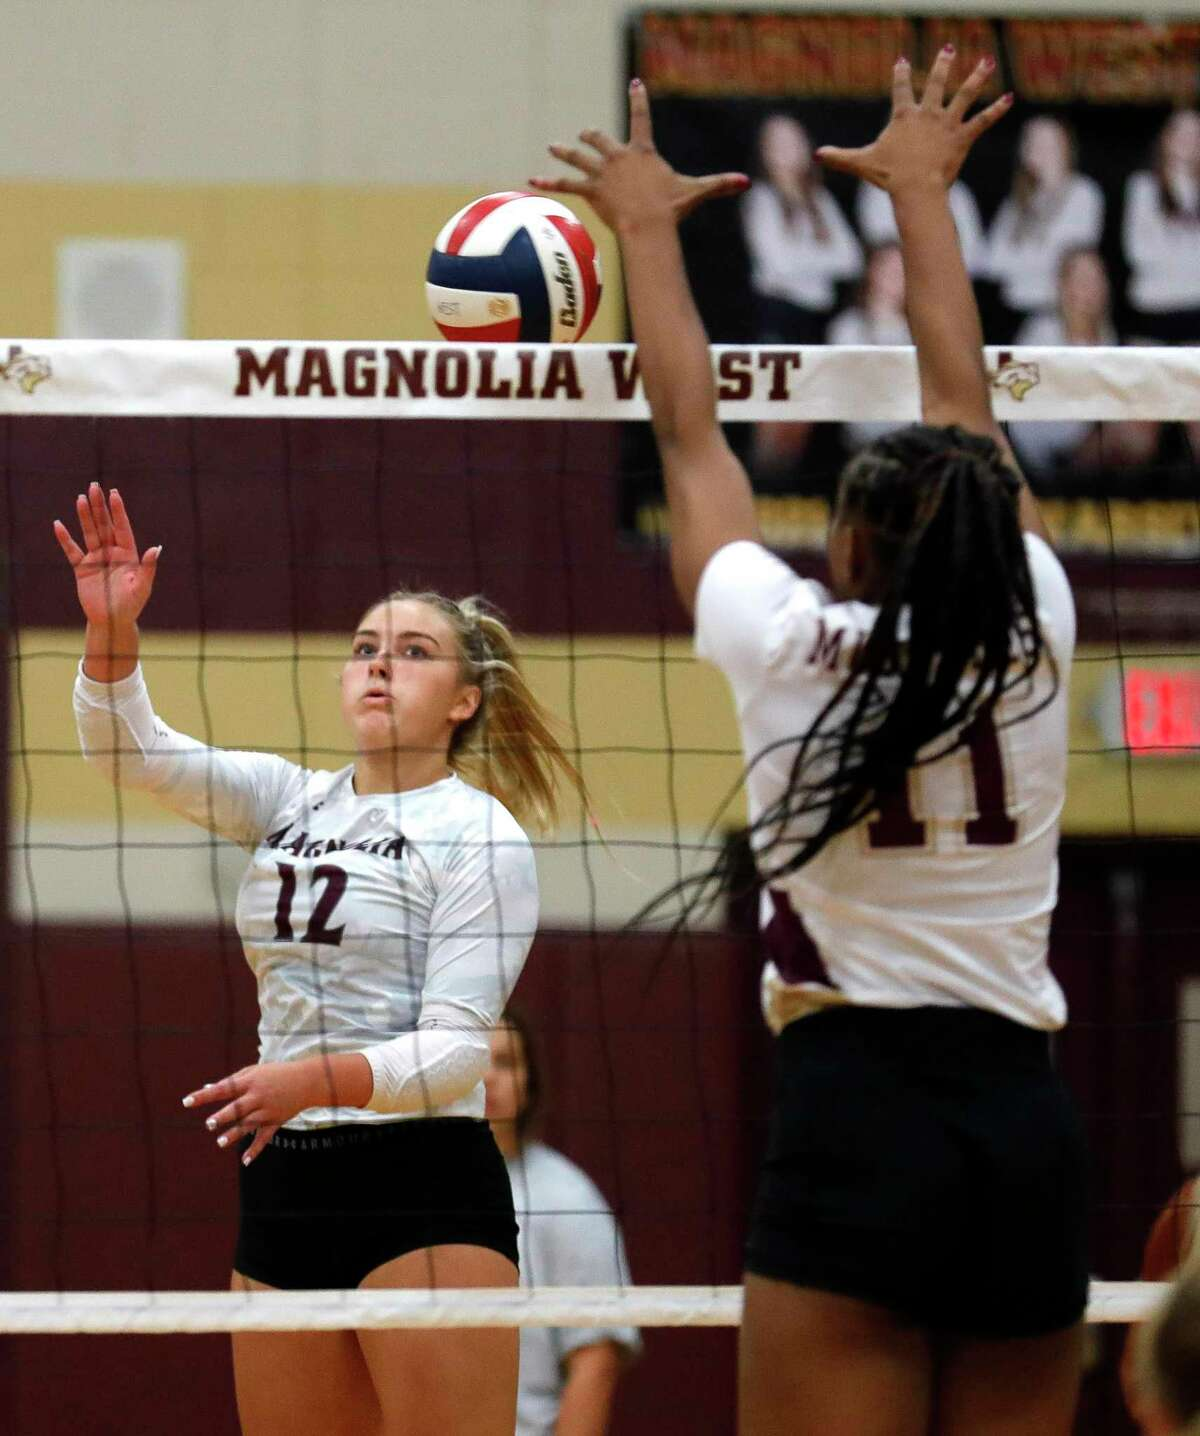 Magnolia outside hitter Sydney Gentry (12), shown here last week, had 11 kills Tuesday night at Waller.